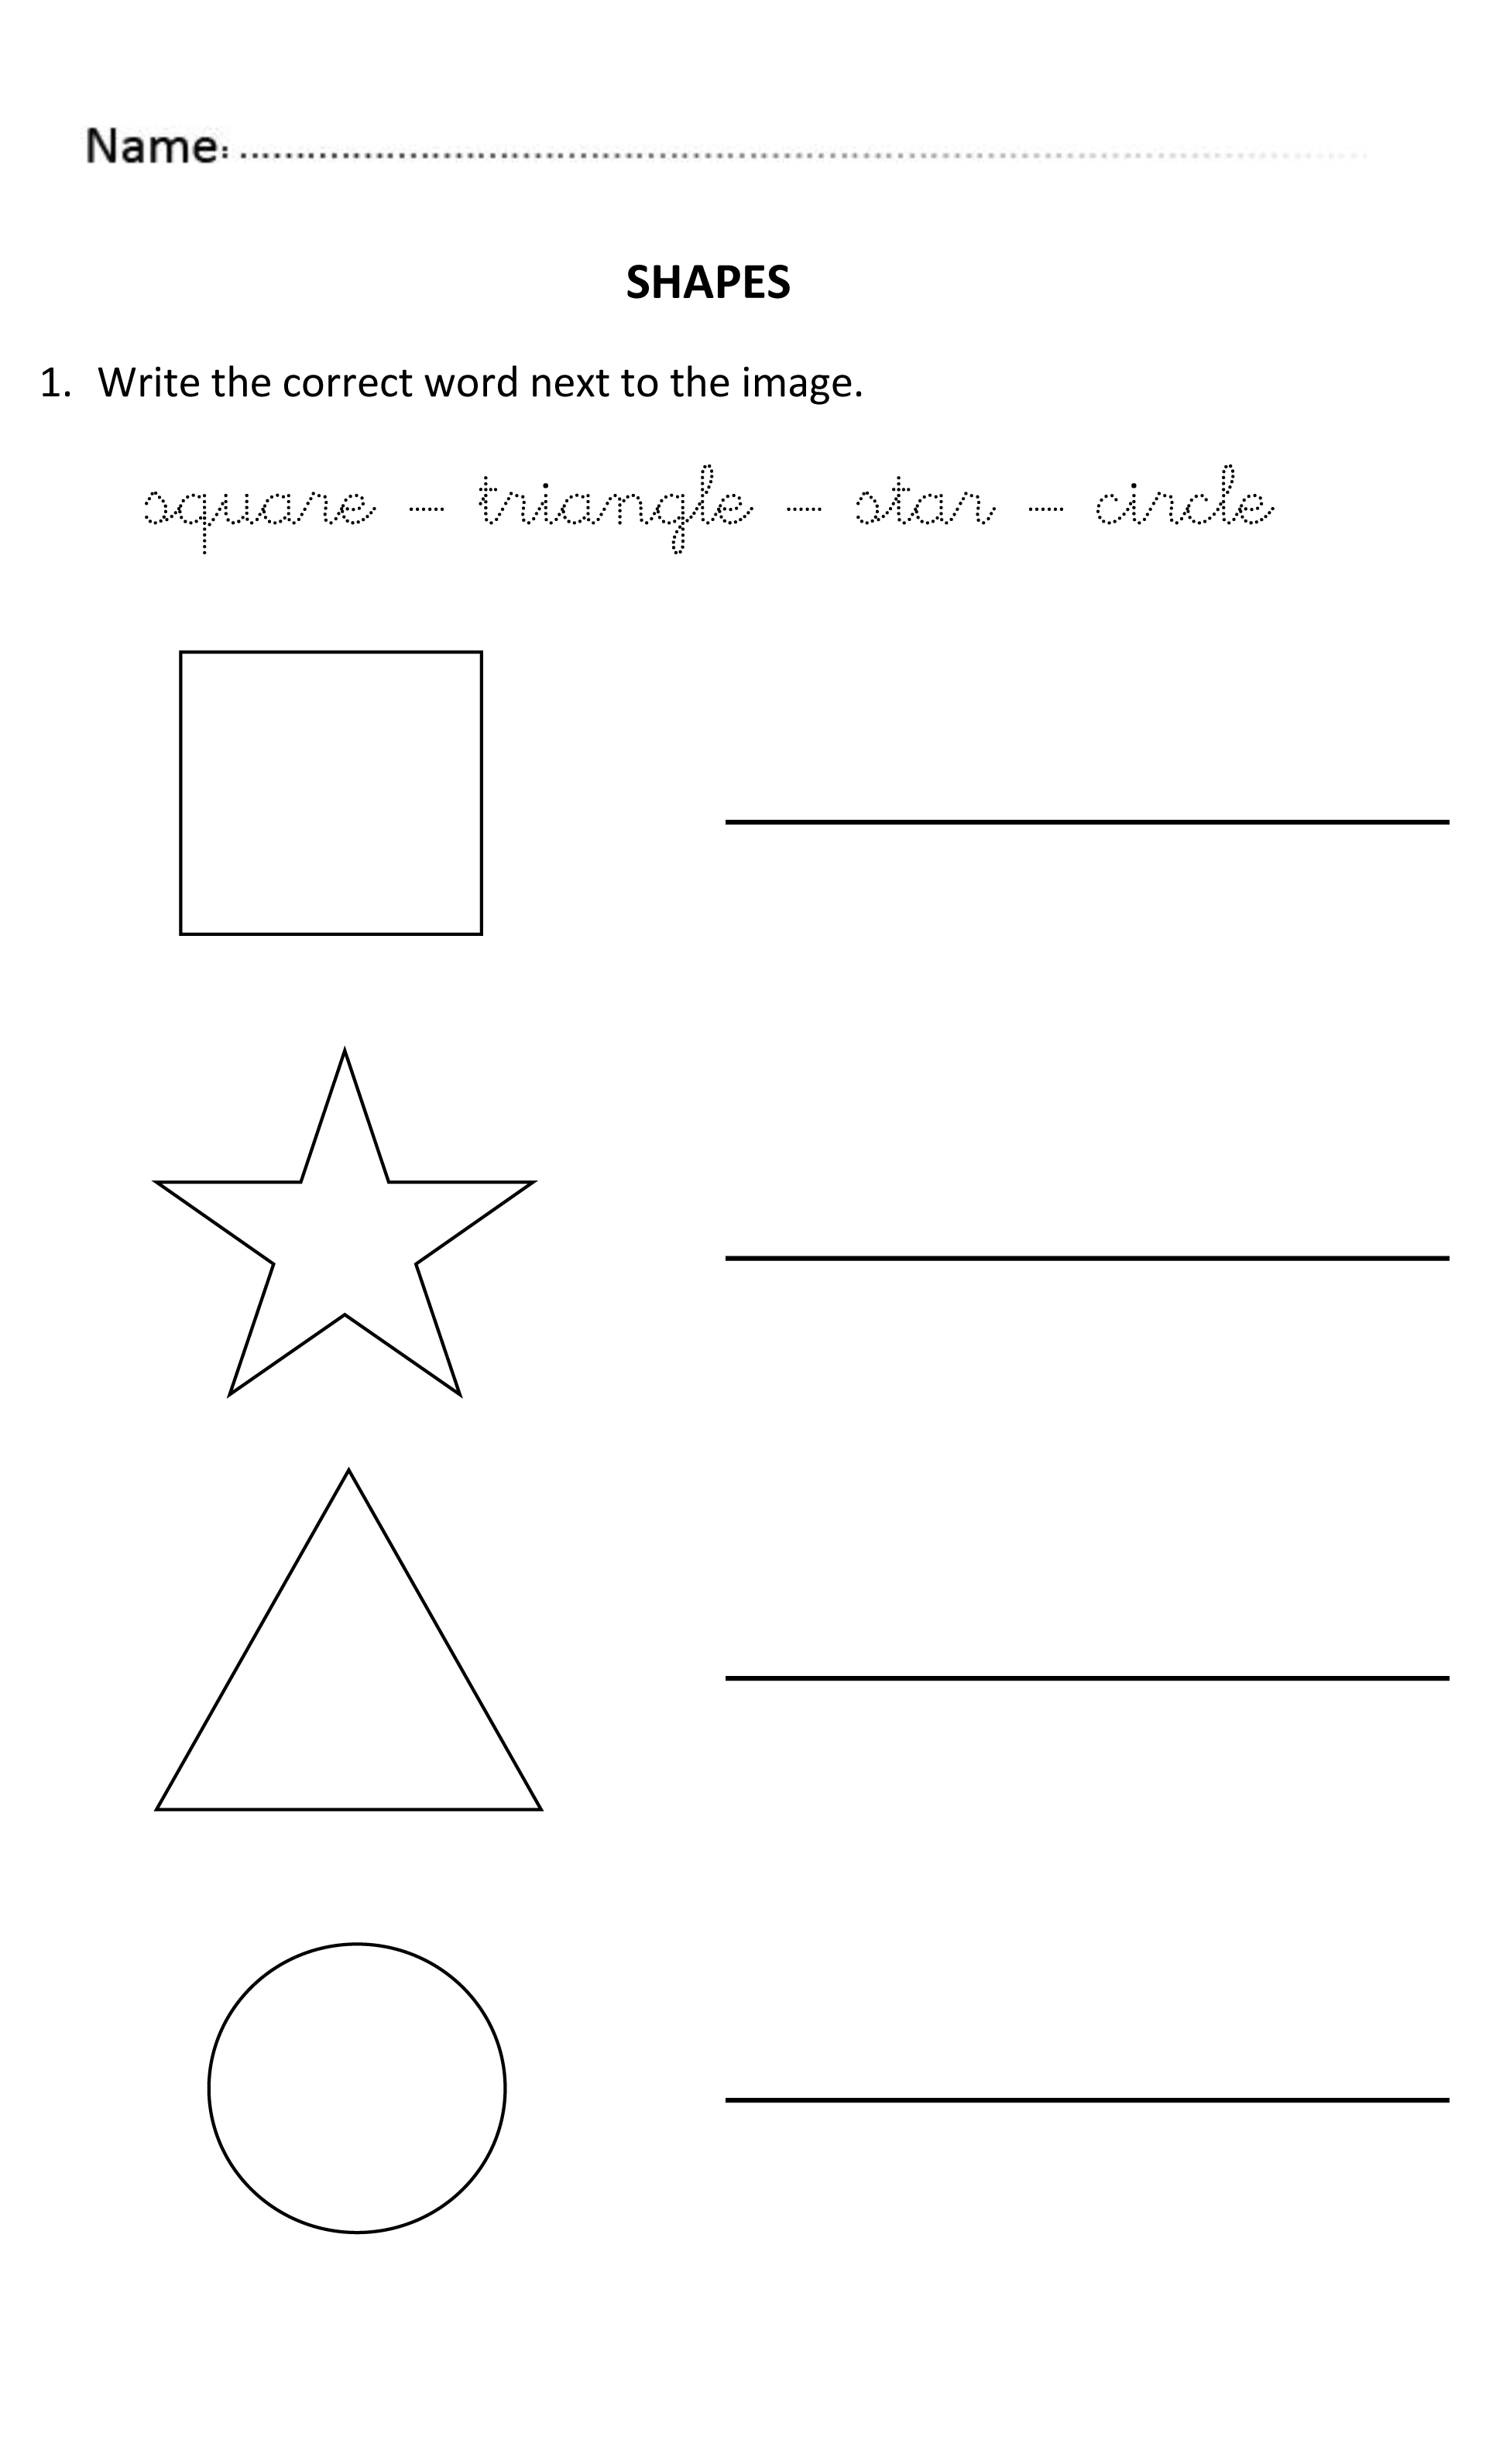 Writing Shapes For 5 And 6 Years Olds Writingshapes